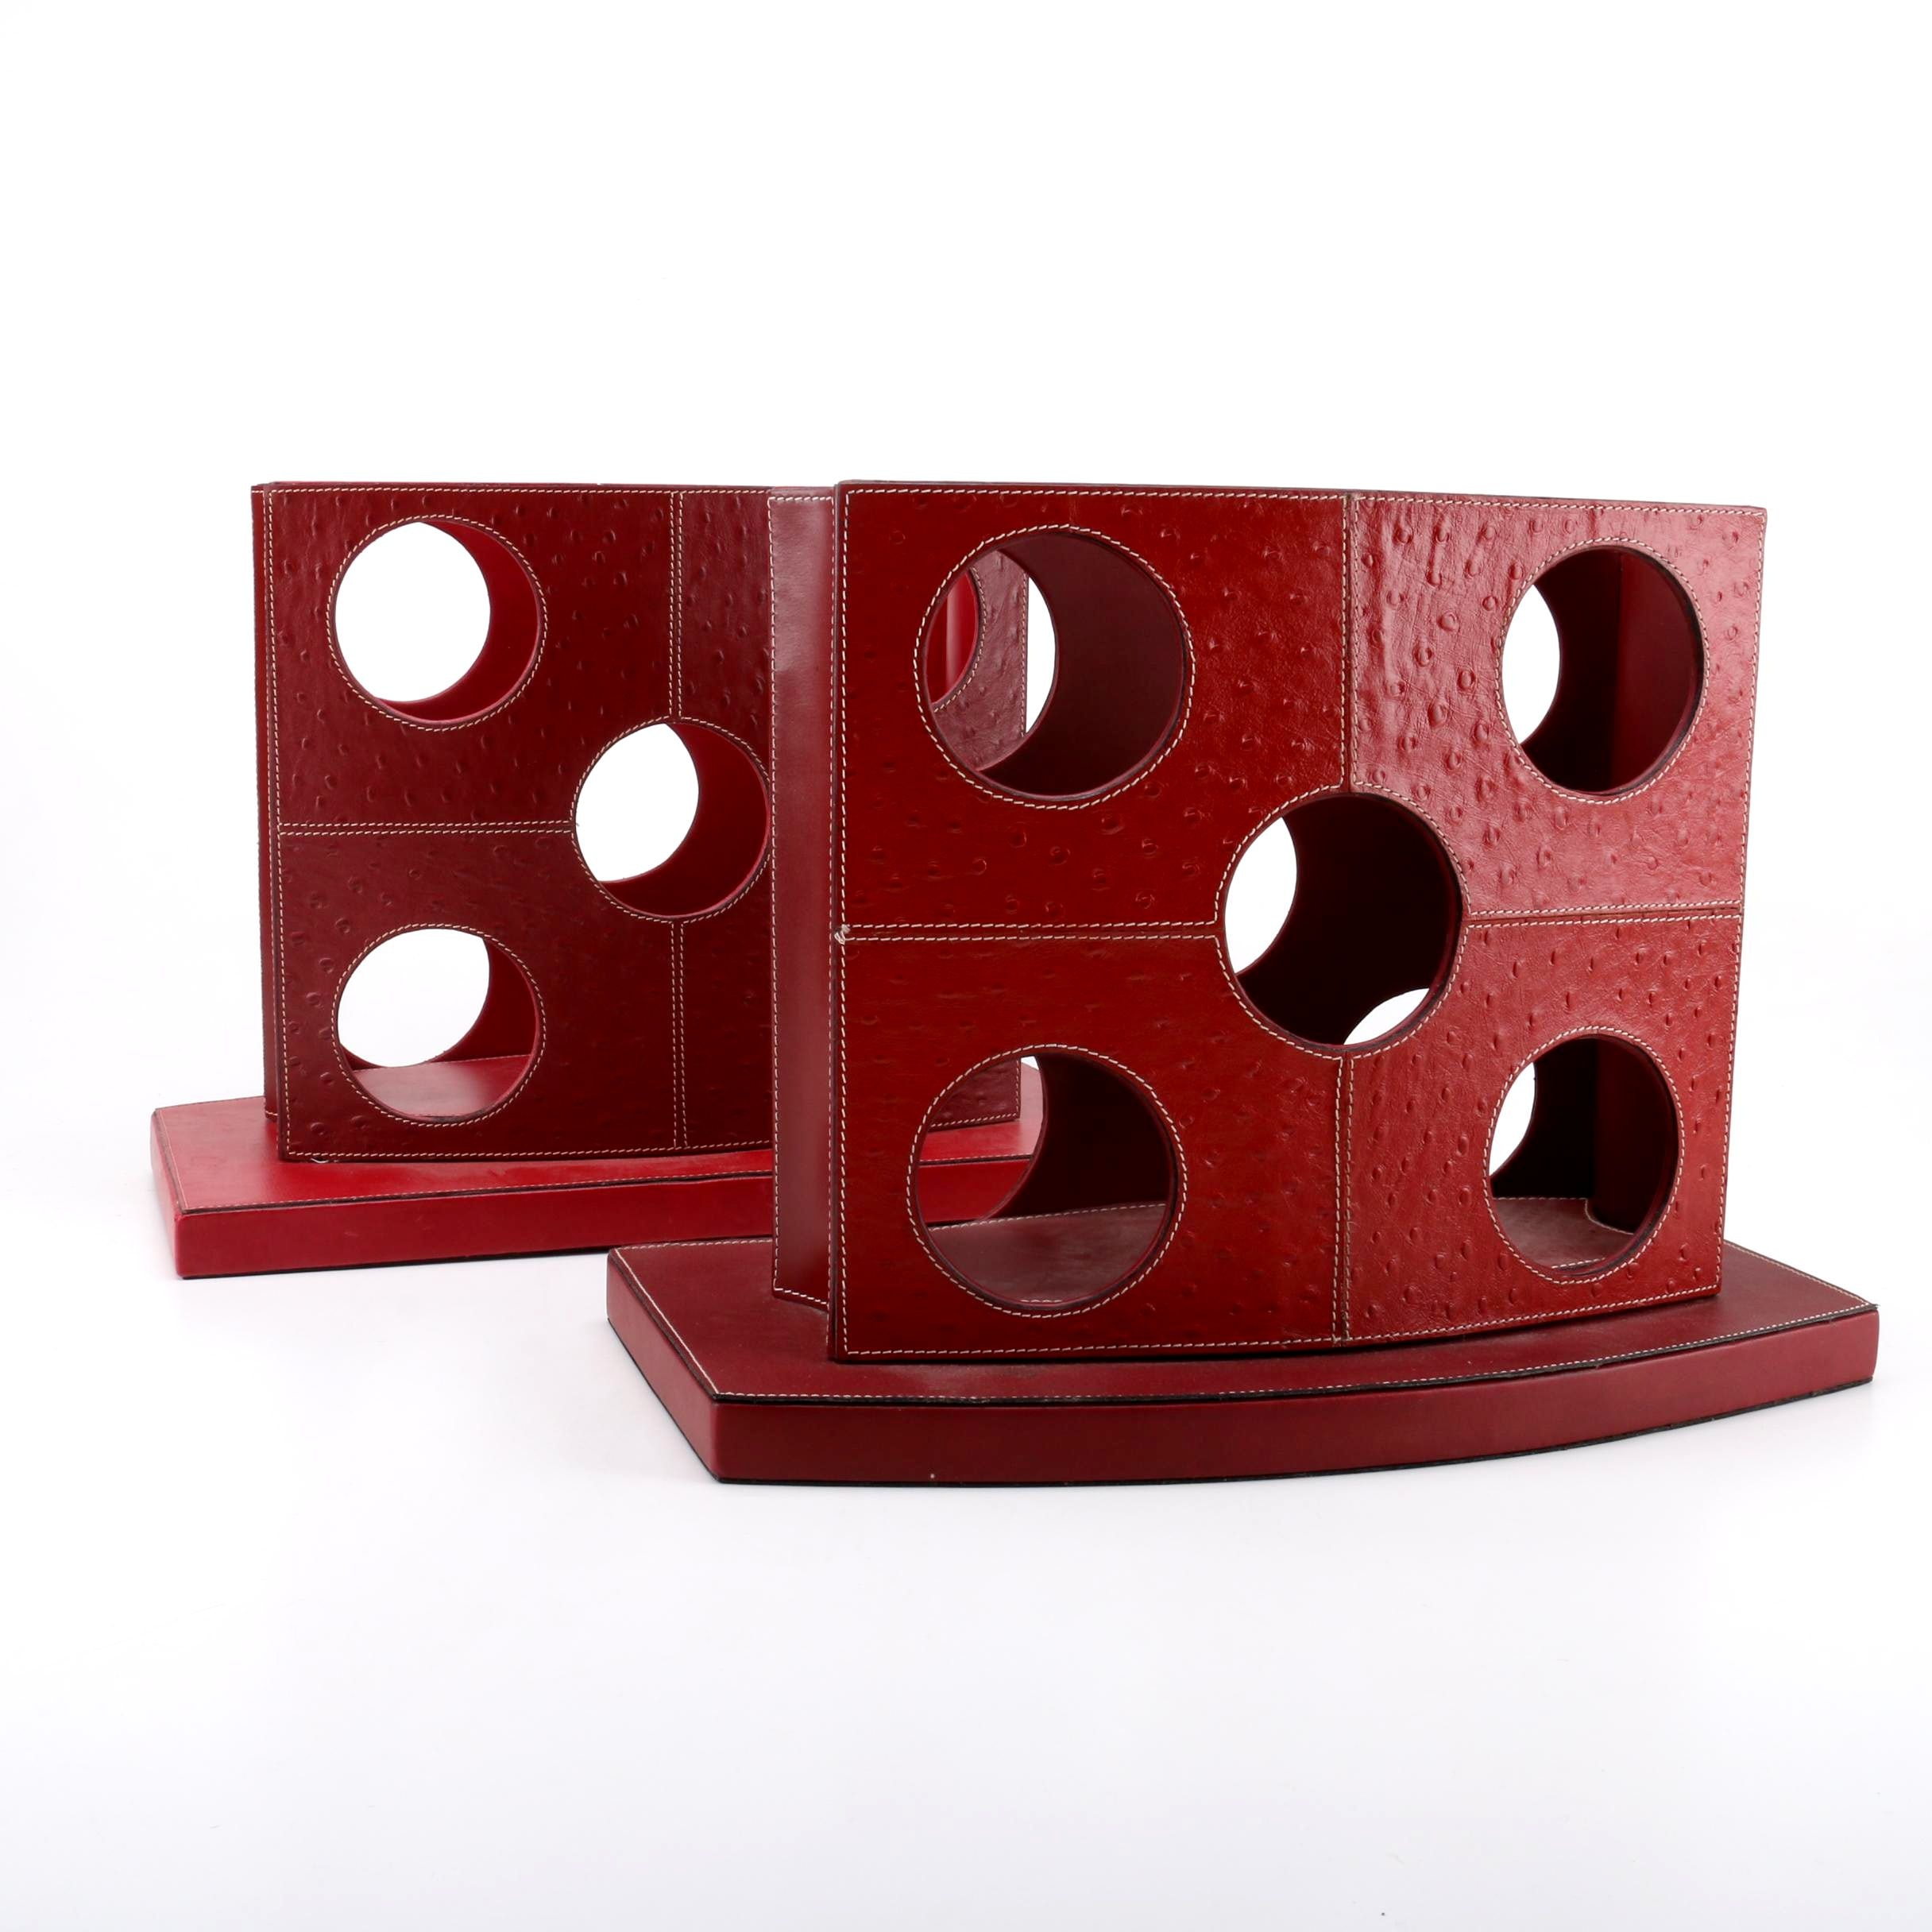 Embossed Leather Wrapped Wine Racks